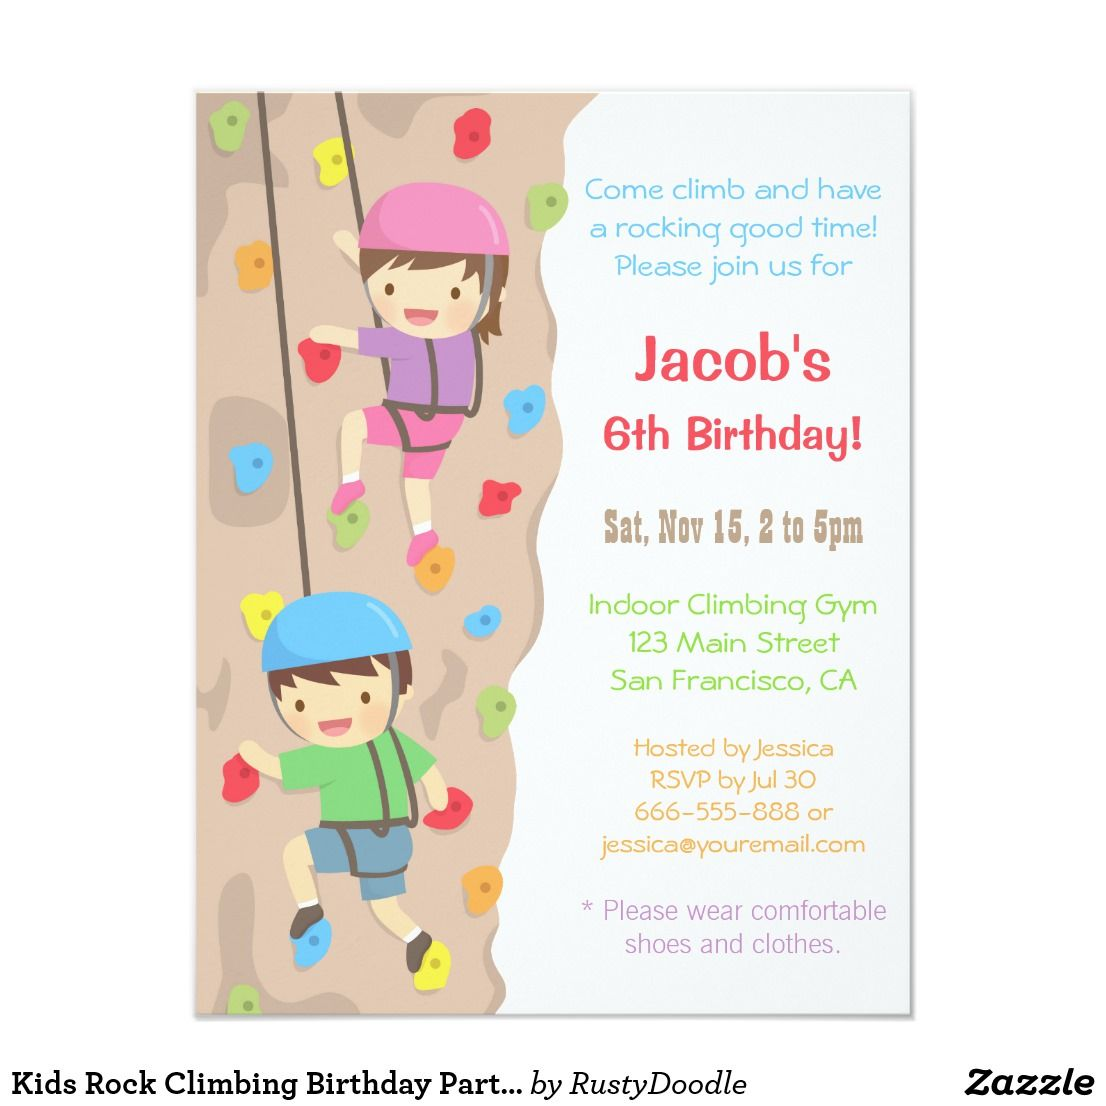 Kids Rock Climbing Birthday Party Invitations | Party invitations ...